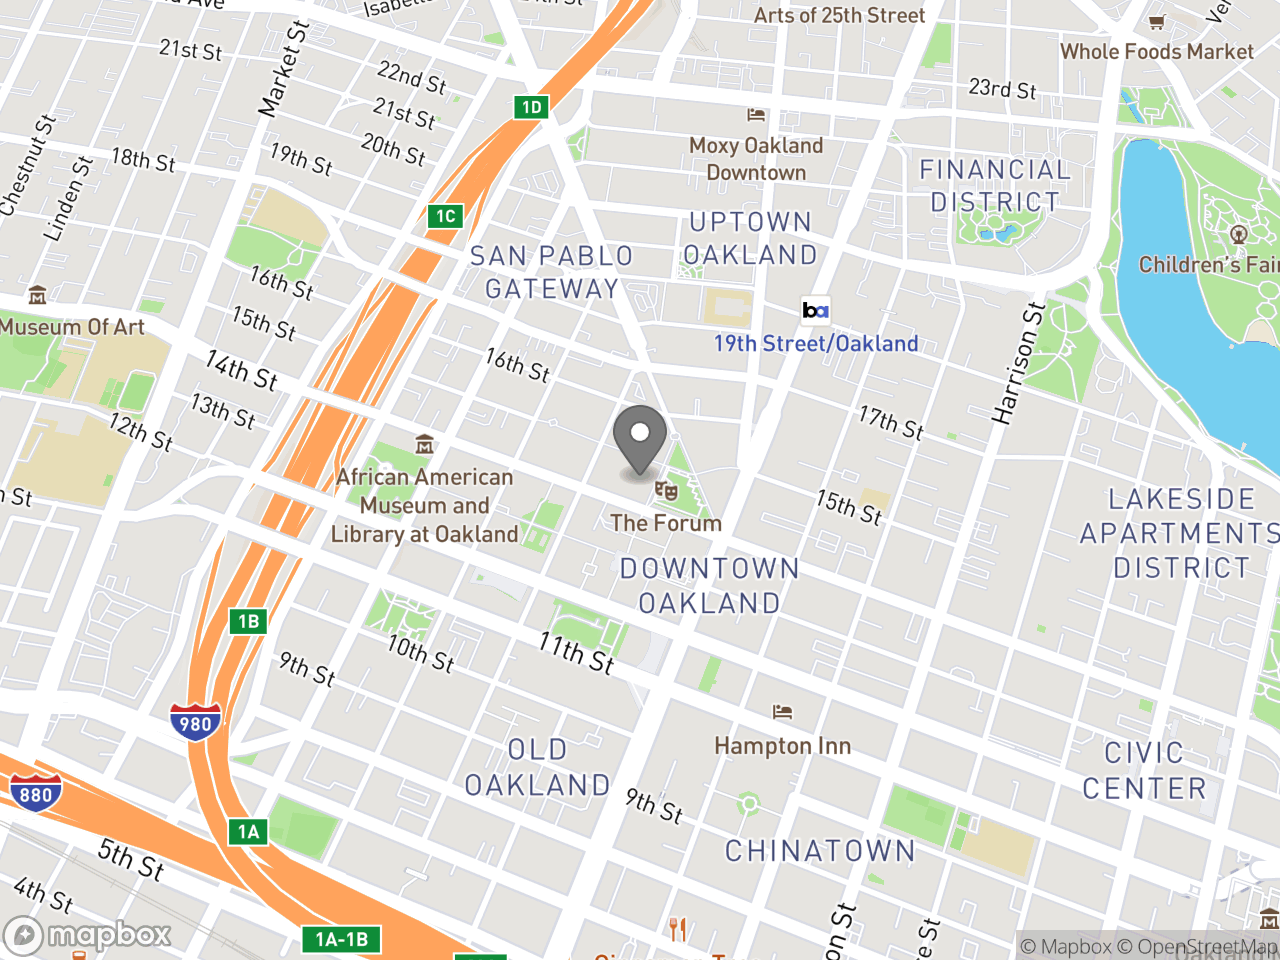 Map location for Police Commission August 9, 2018, located at 1 Frank H Ogawa Plaza in Oakland, CA 94612